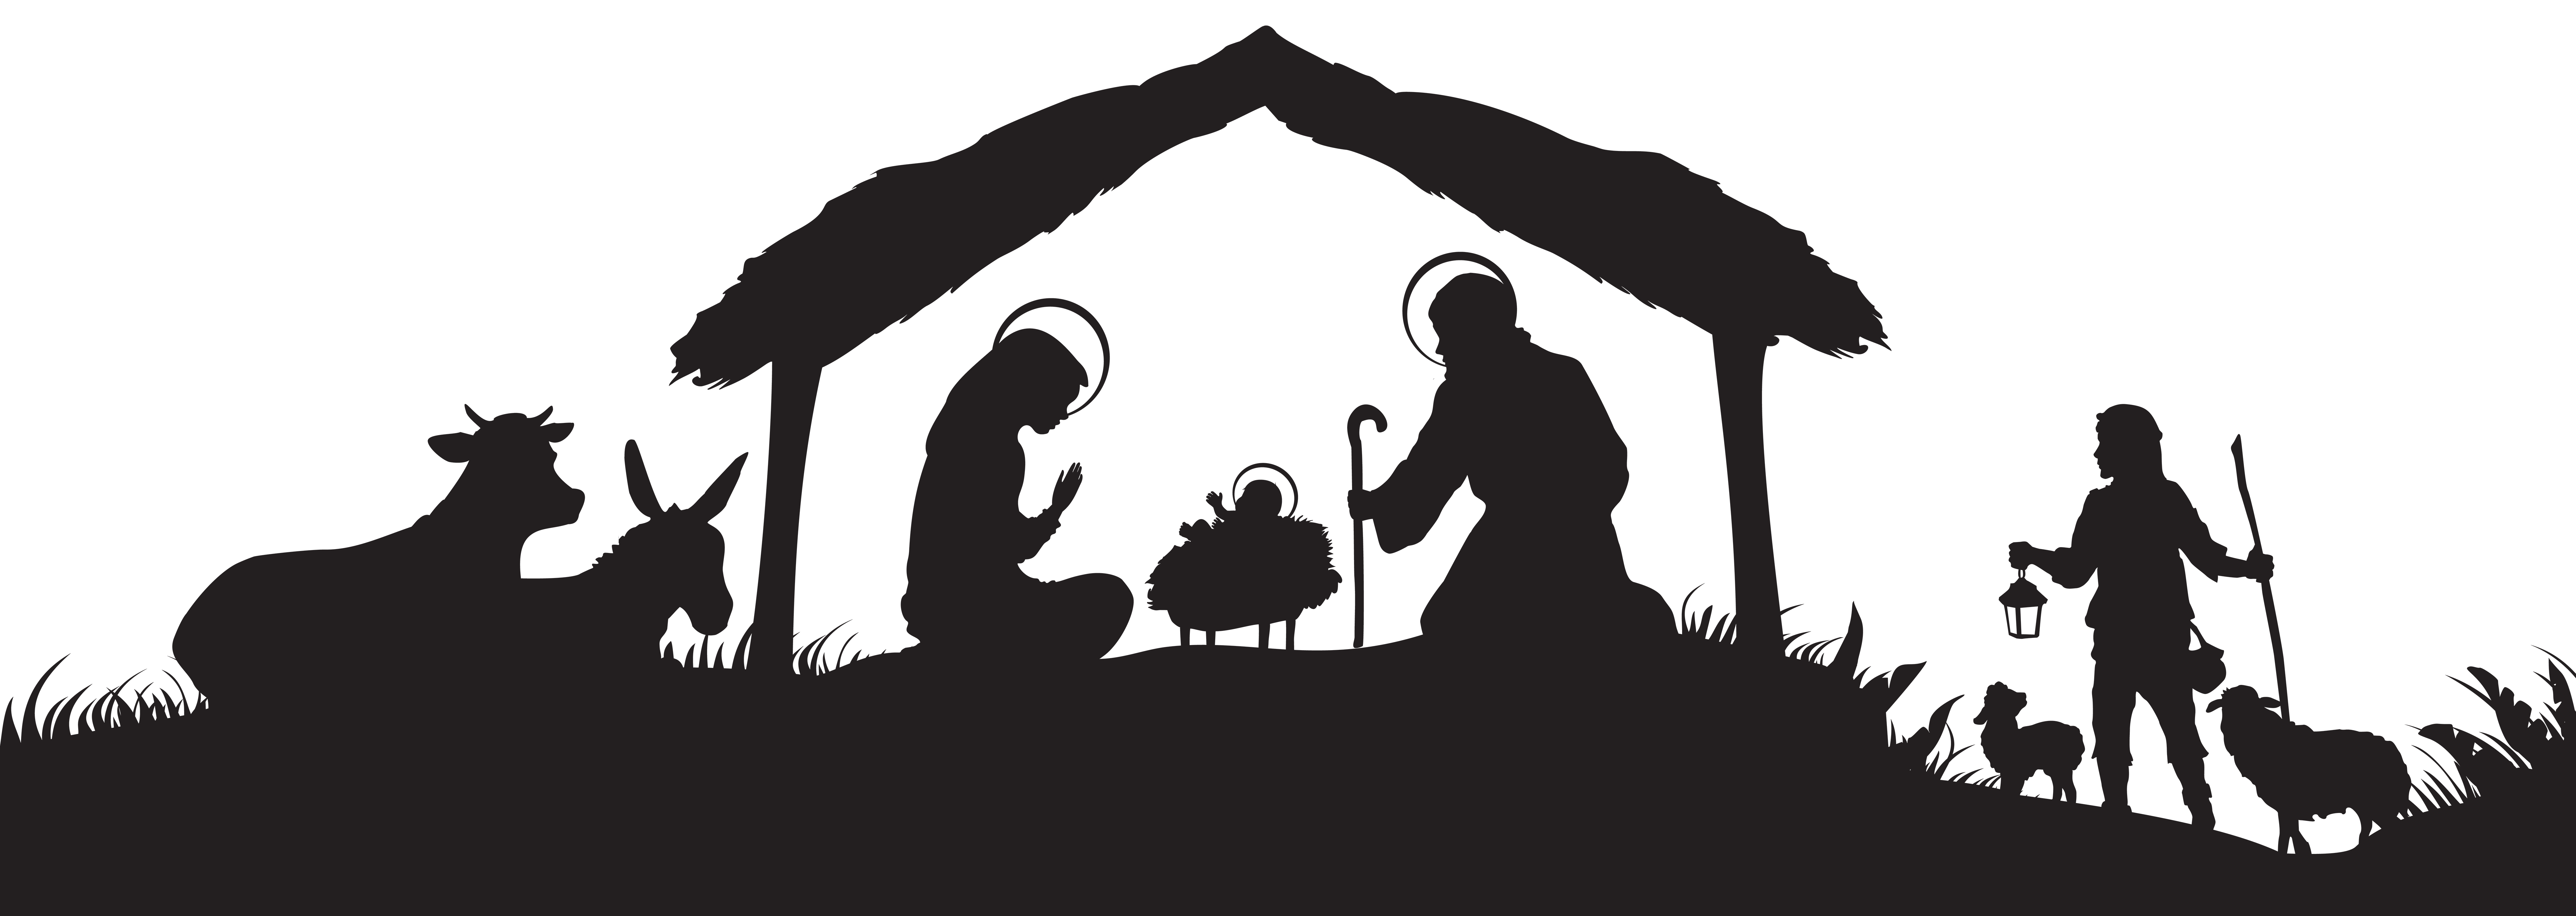 Silhouette manger scene clipart clipart images gallery for.